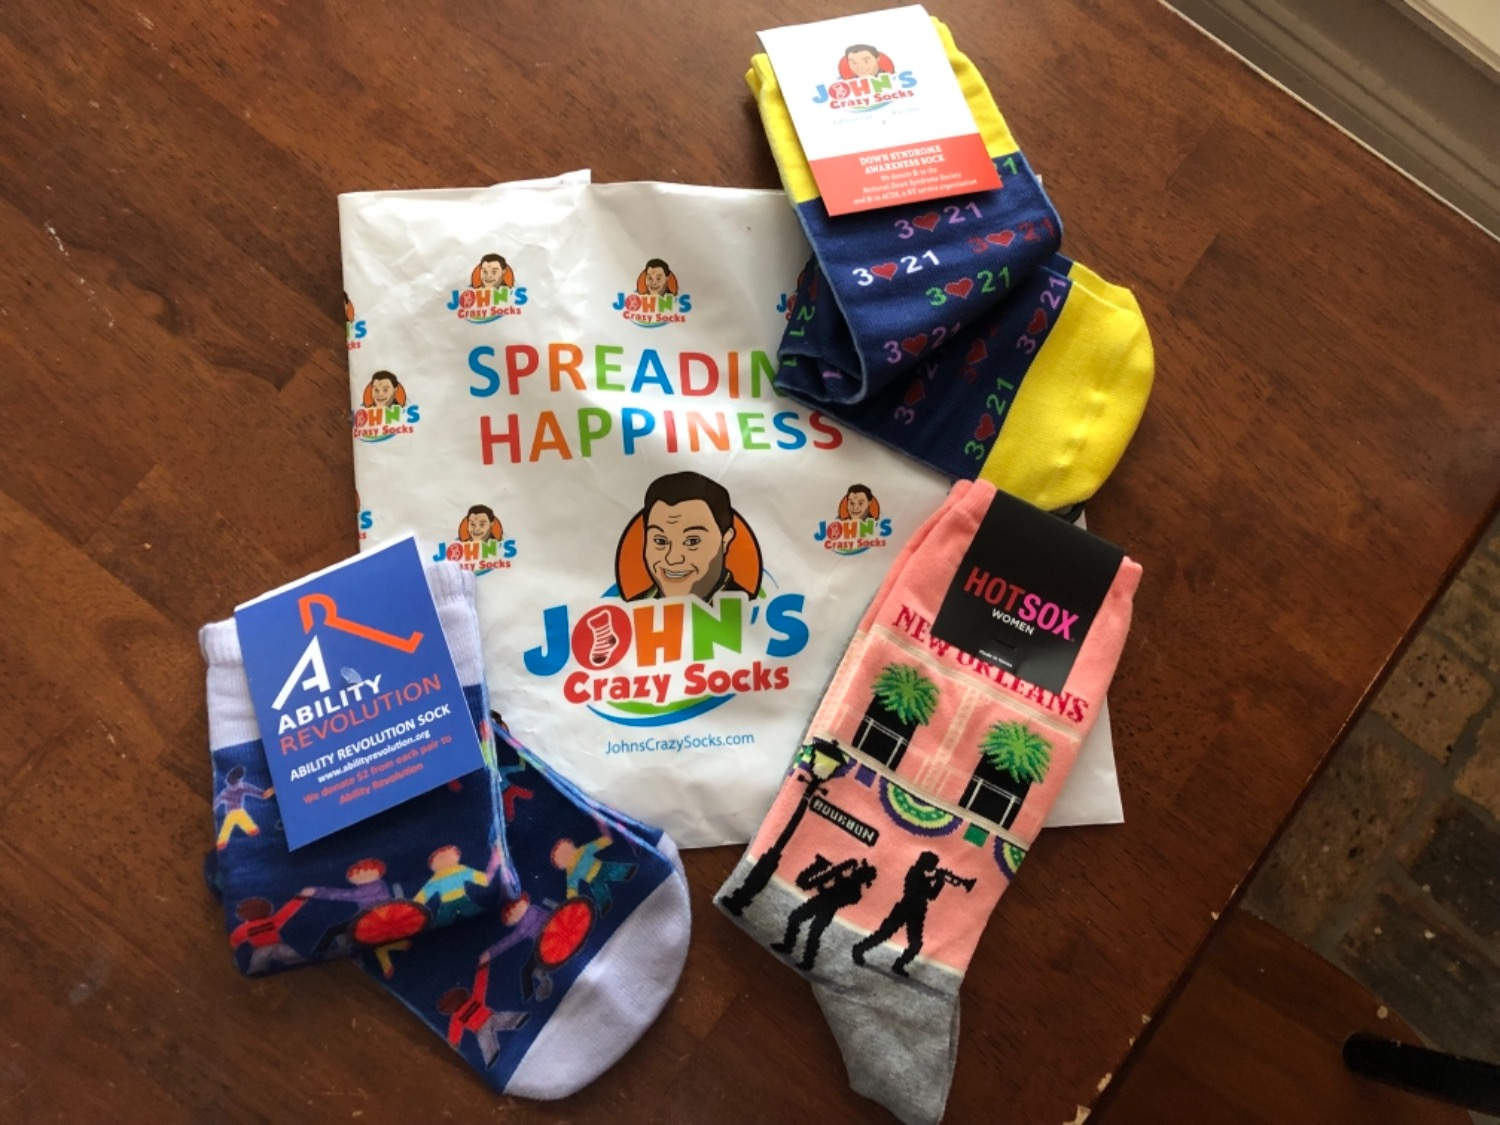 36f40f1a49f49 I love my awareness socks!! I have a sensitive ankle and they are not too  tight. My socks came in really quickly. I had a large enough purchase to  get free ...